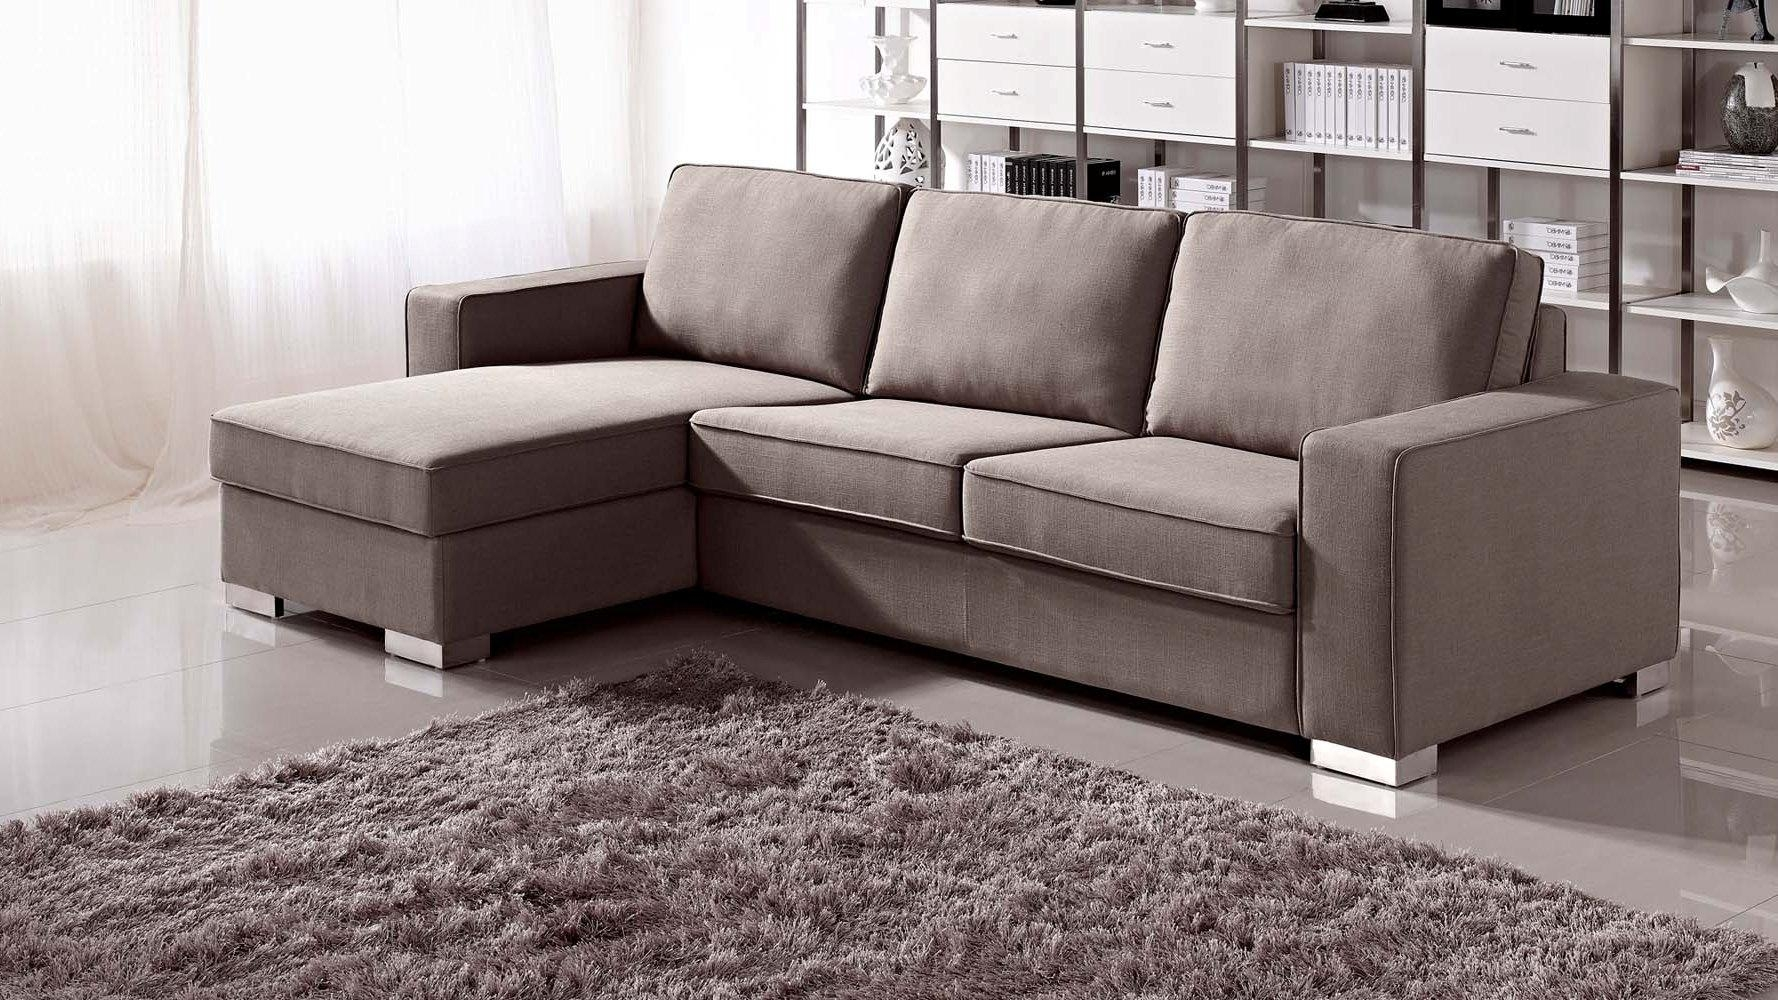 Furniture: Wondrous Alluring Sectional With Sleeper For Home regarding Sectional Sofas With Sleeper And Chaise